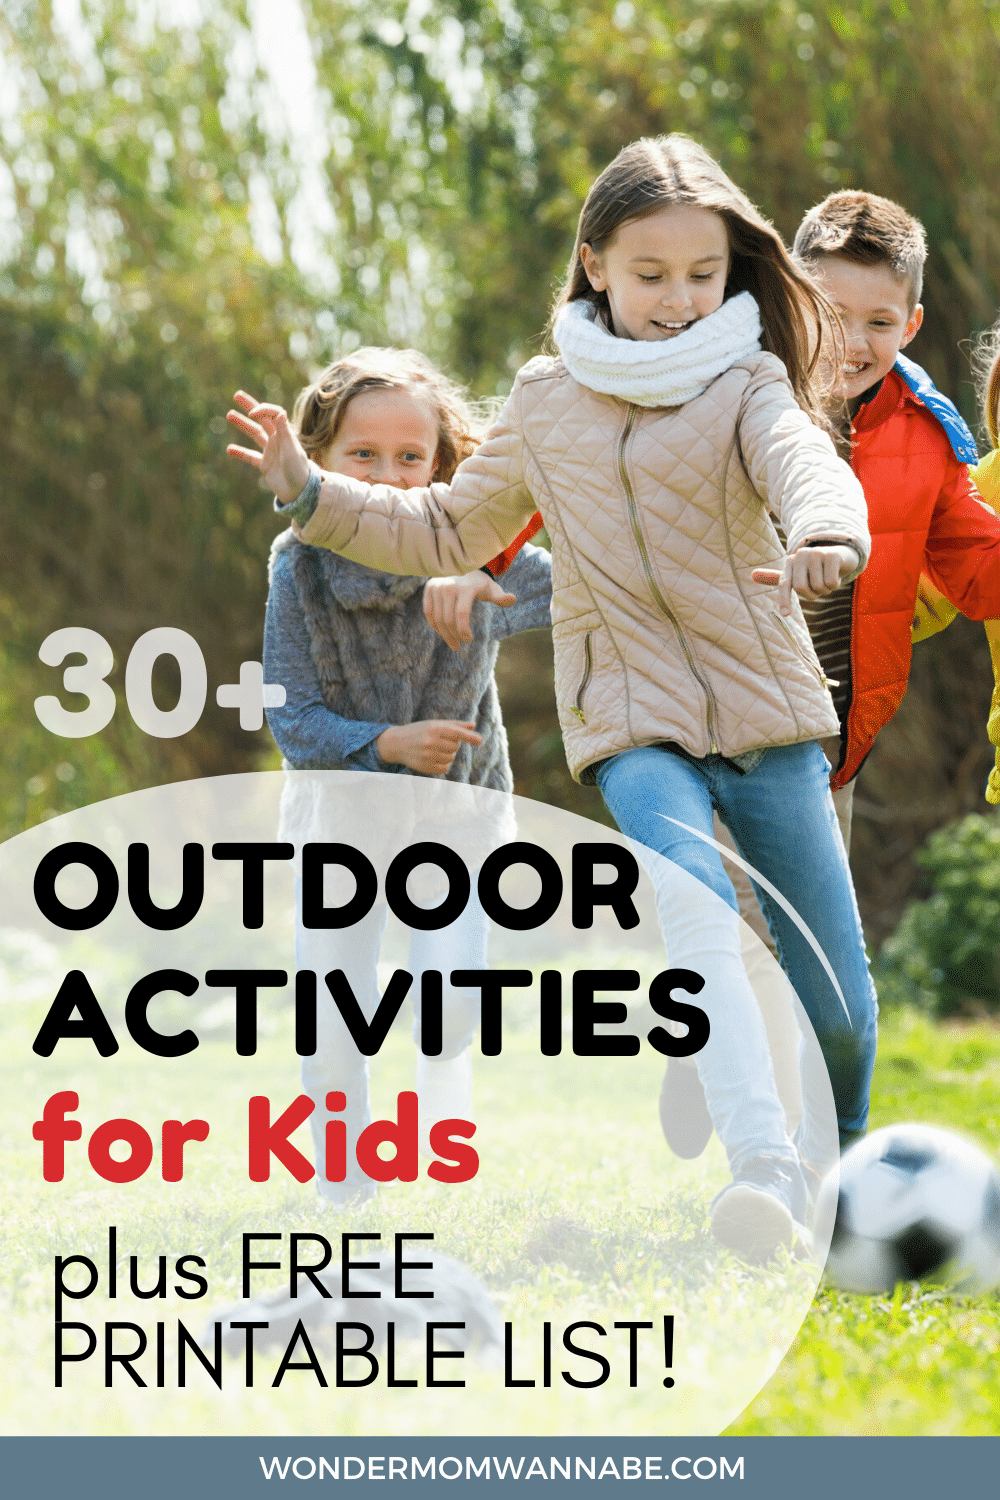 three kids playing soccer on the grass outside with title text reading 30+ Outdoor Activities for Kids plus Free Printable List